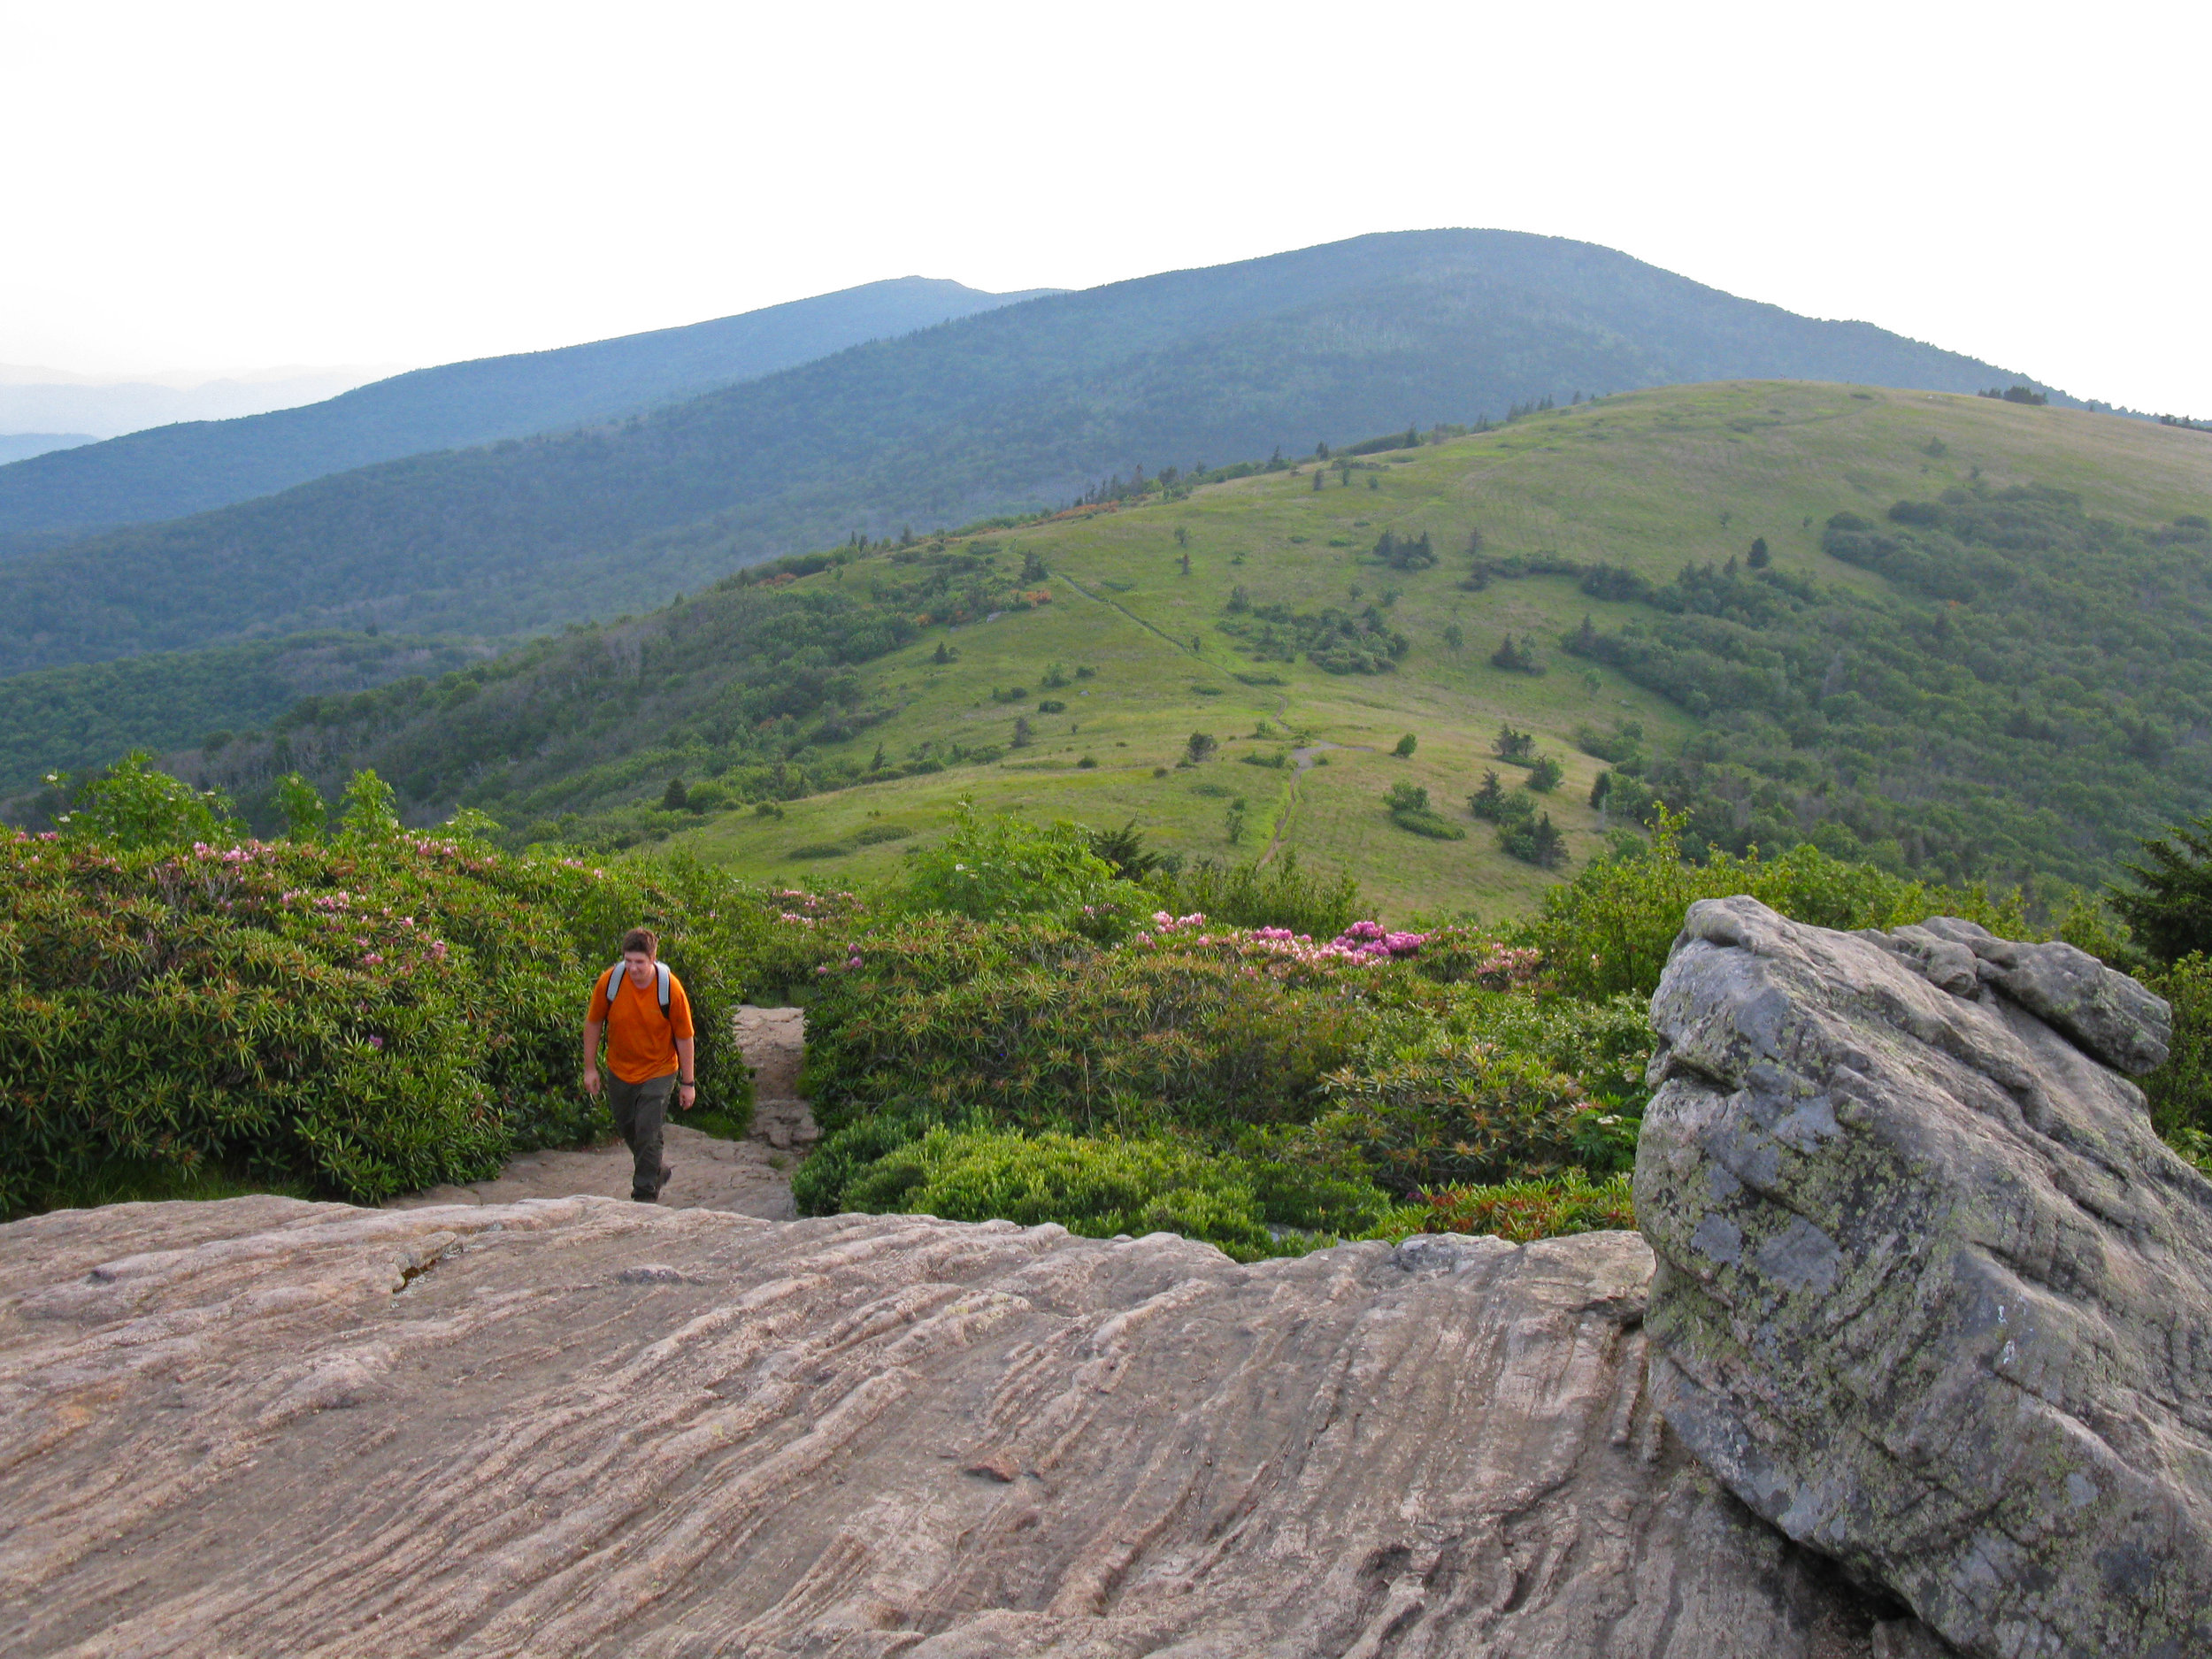 (Photo credit: Appalachian Trail Conservancy)